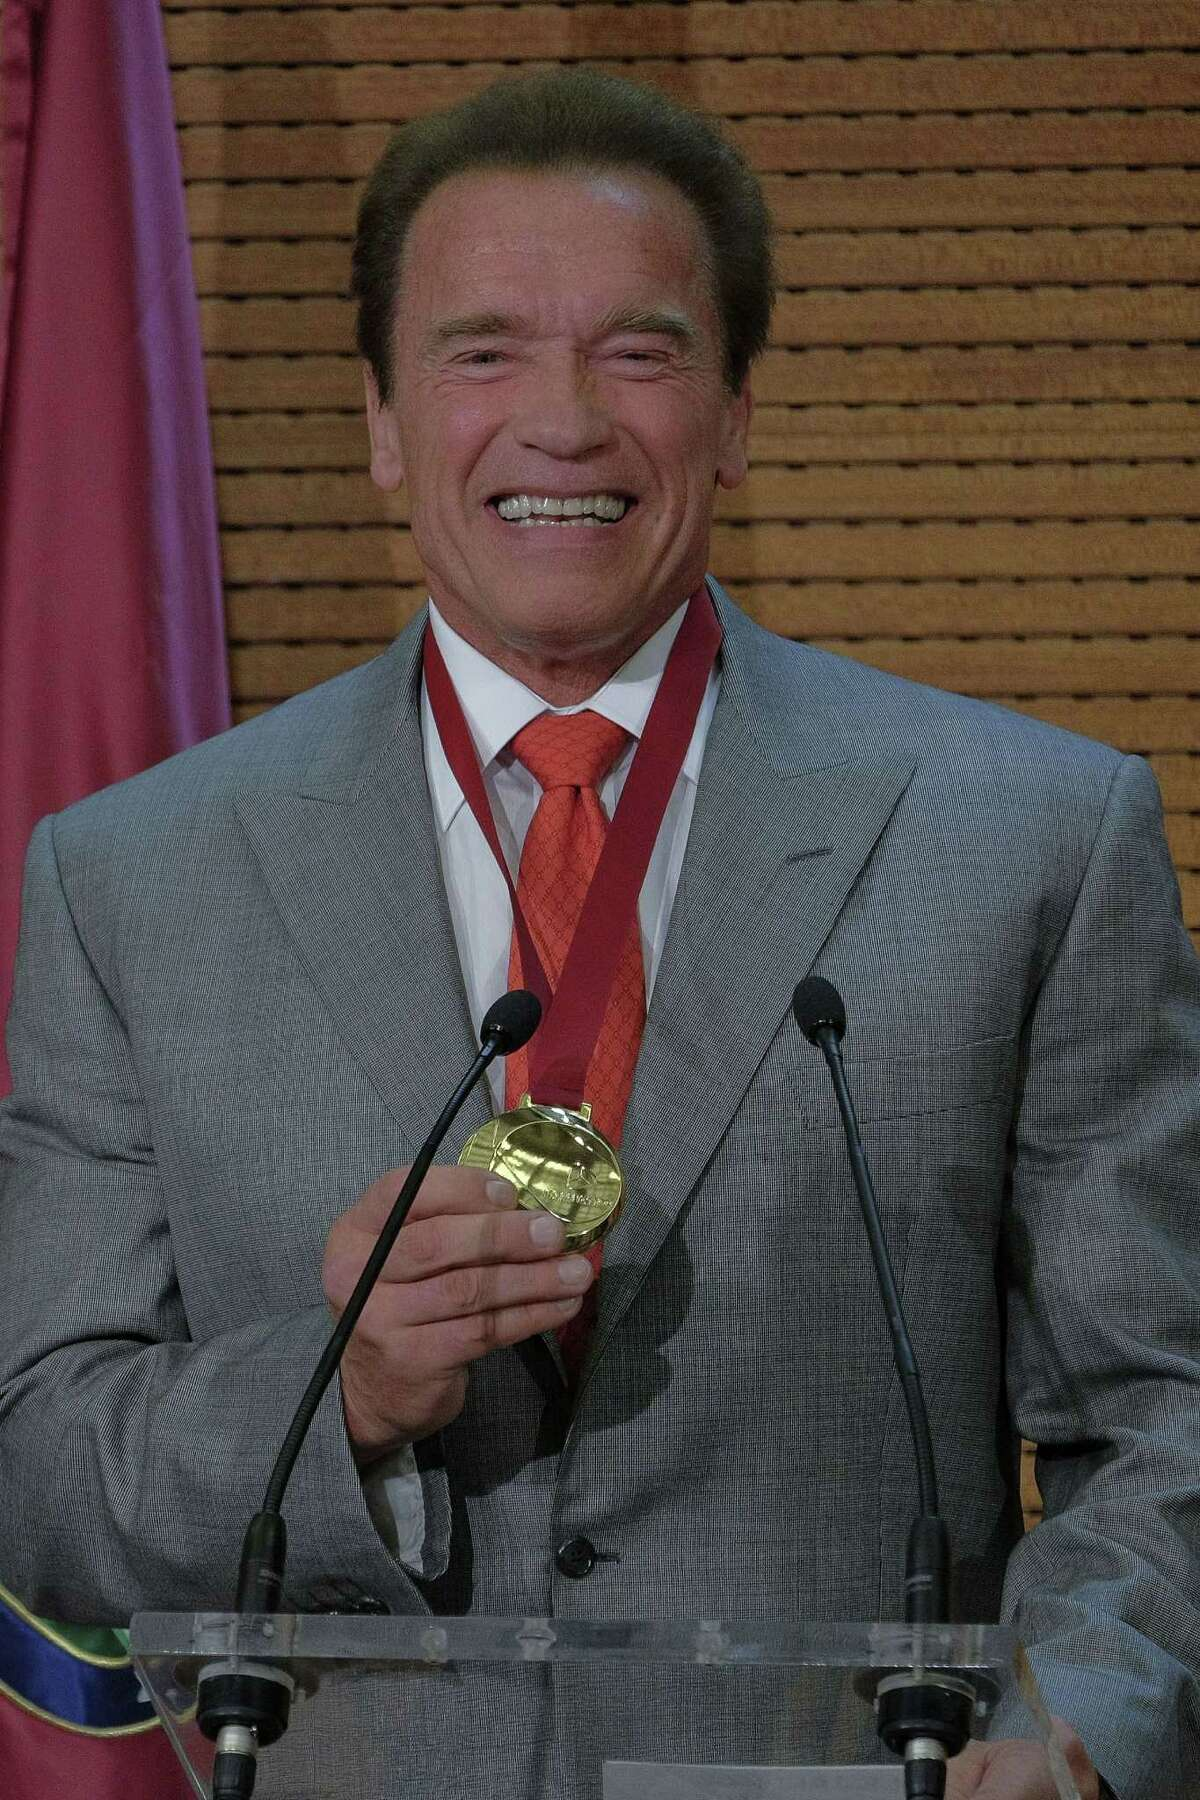 US actor Arnold Schwarzenegger poses with the medal of Tourist Ambassador for Madrid for his contribution to the promotion of the city in Madrid on September 26, 2014.